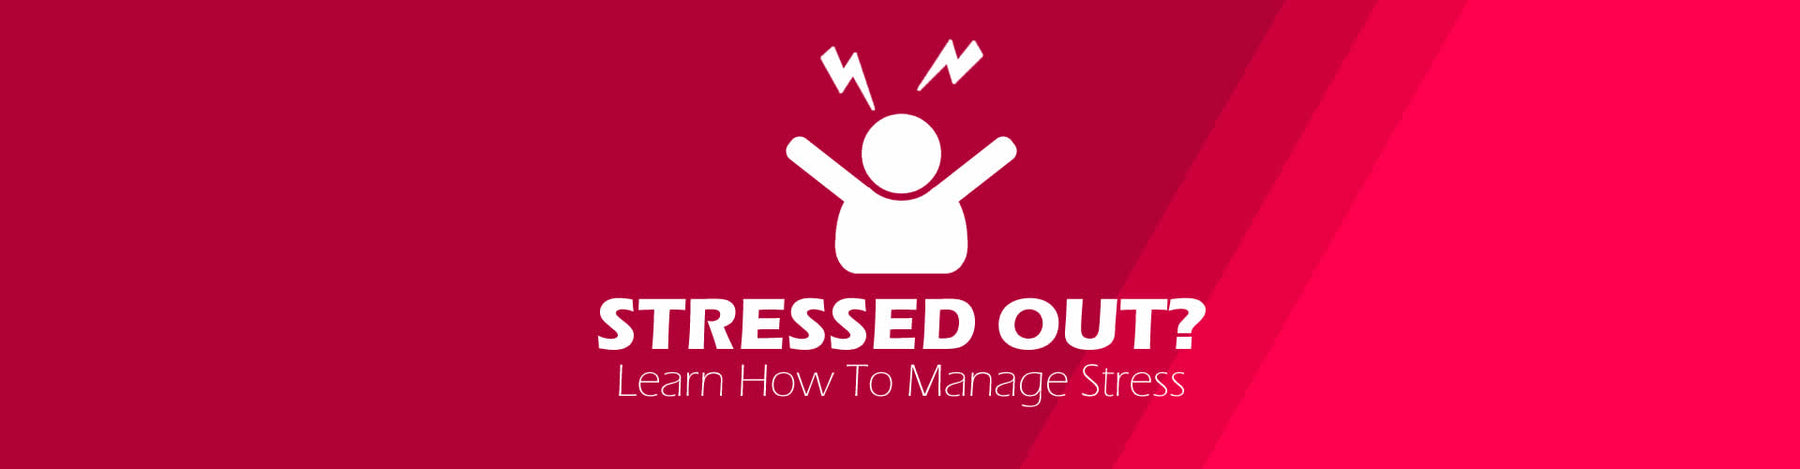 tips-to-manage-stress-blog